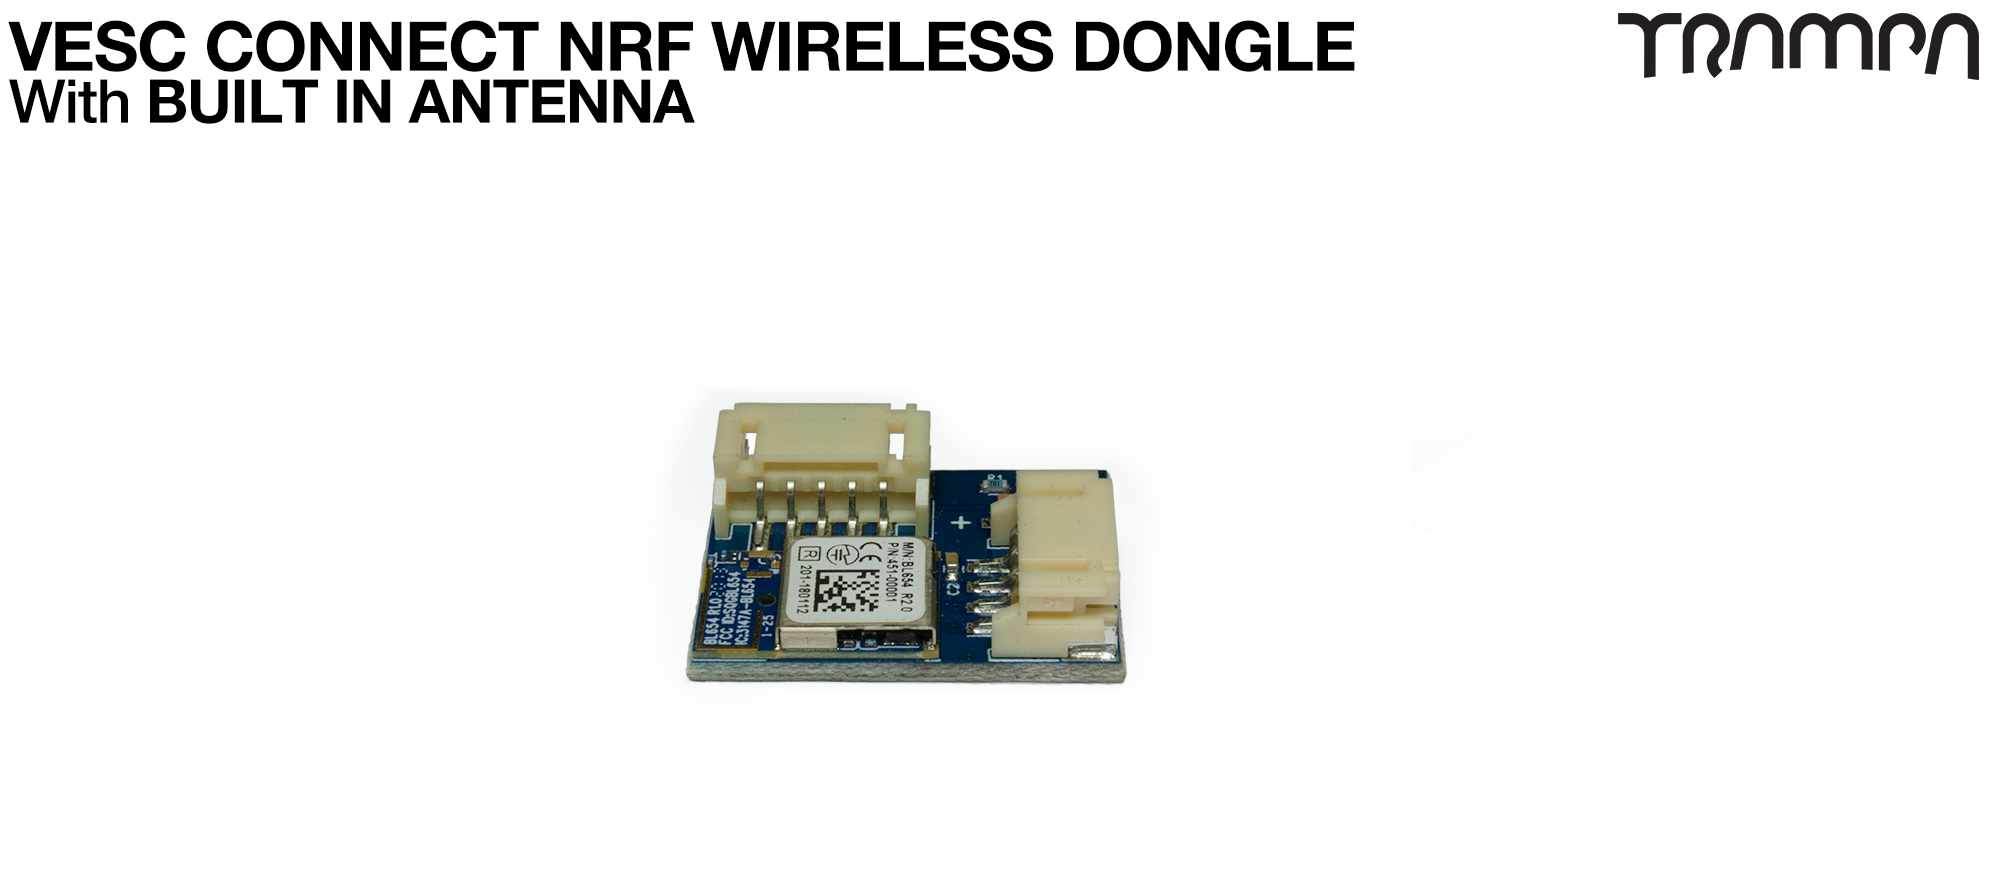 NRF Dongle with Internal Antenna